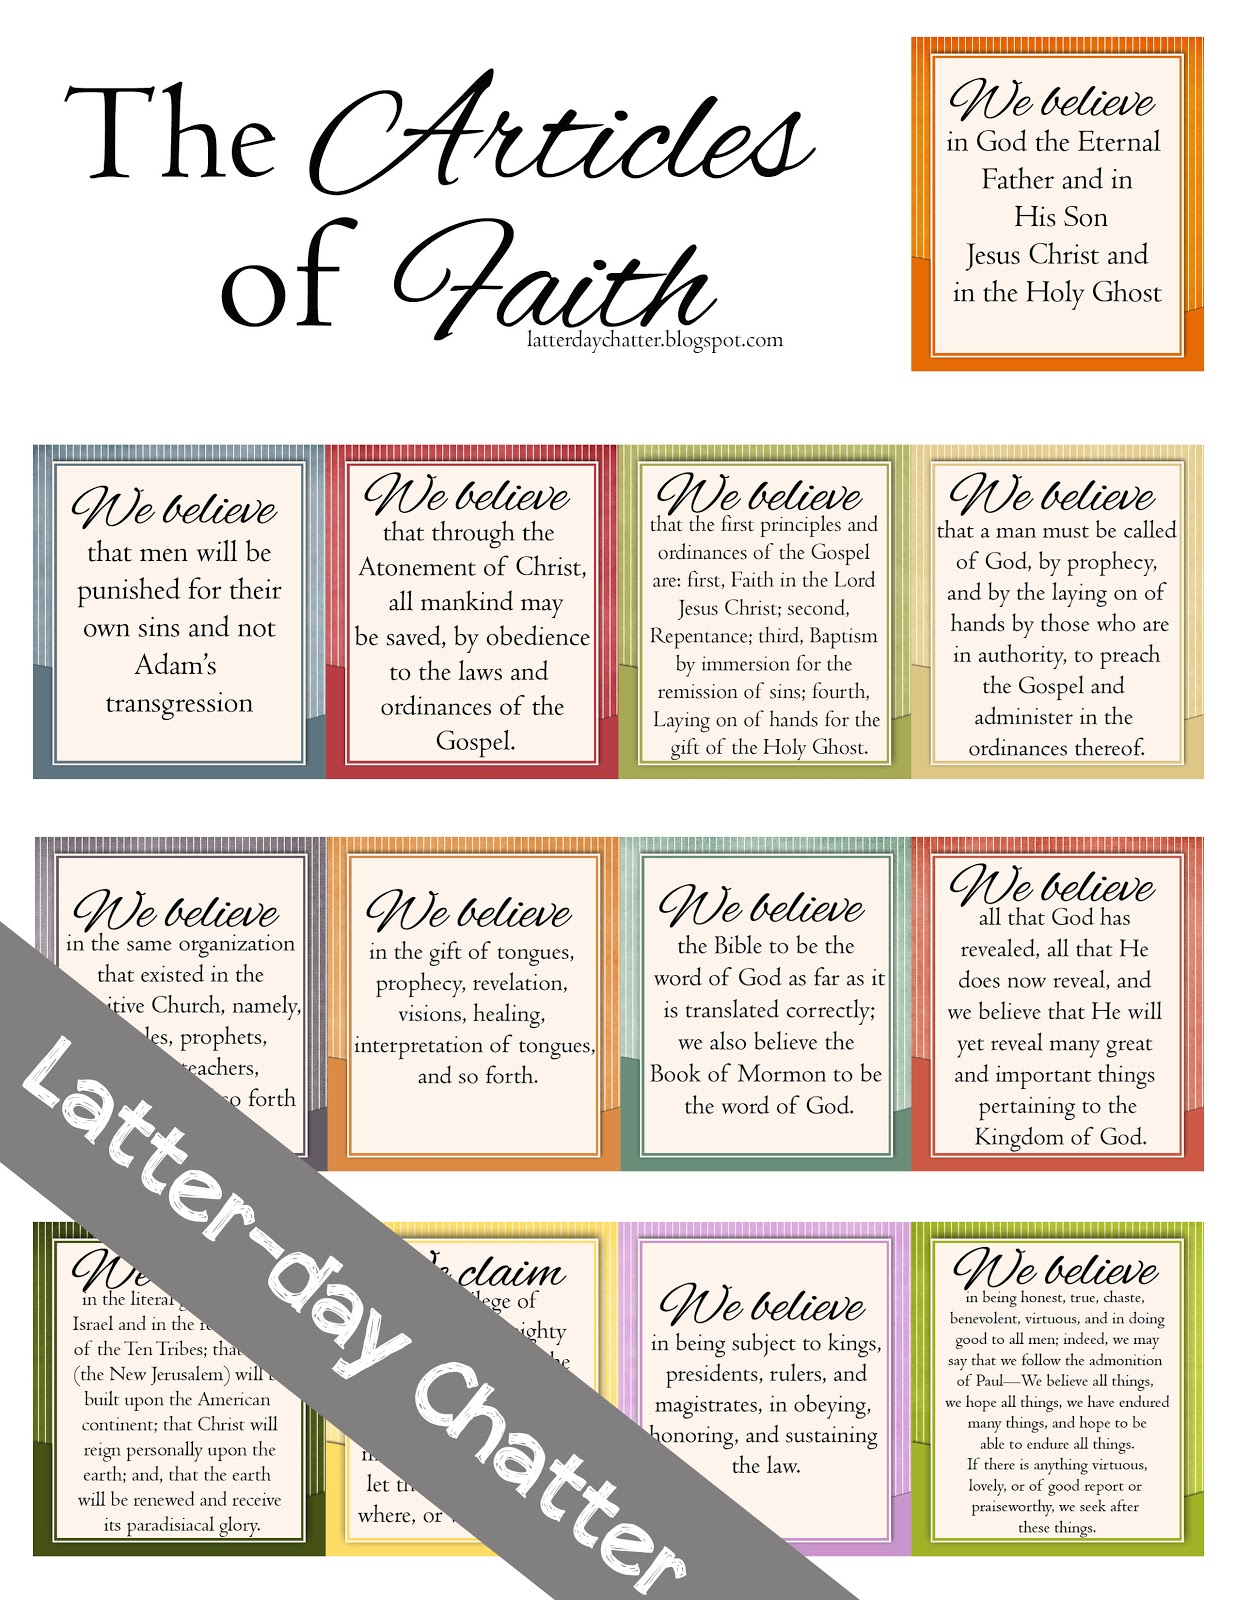 Mesmerizing image with 13 articles of faith printable